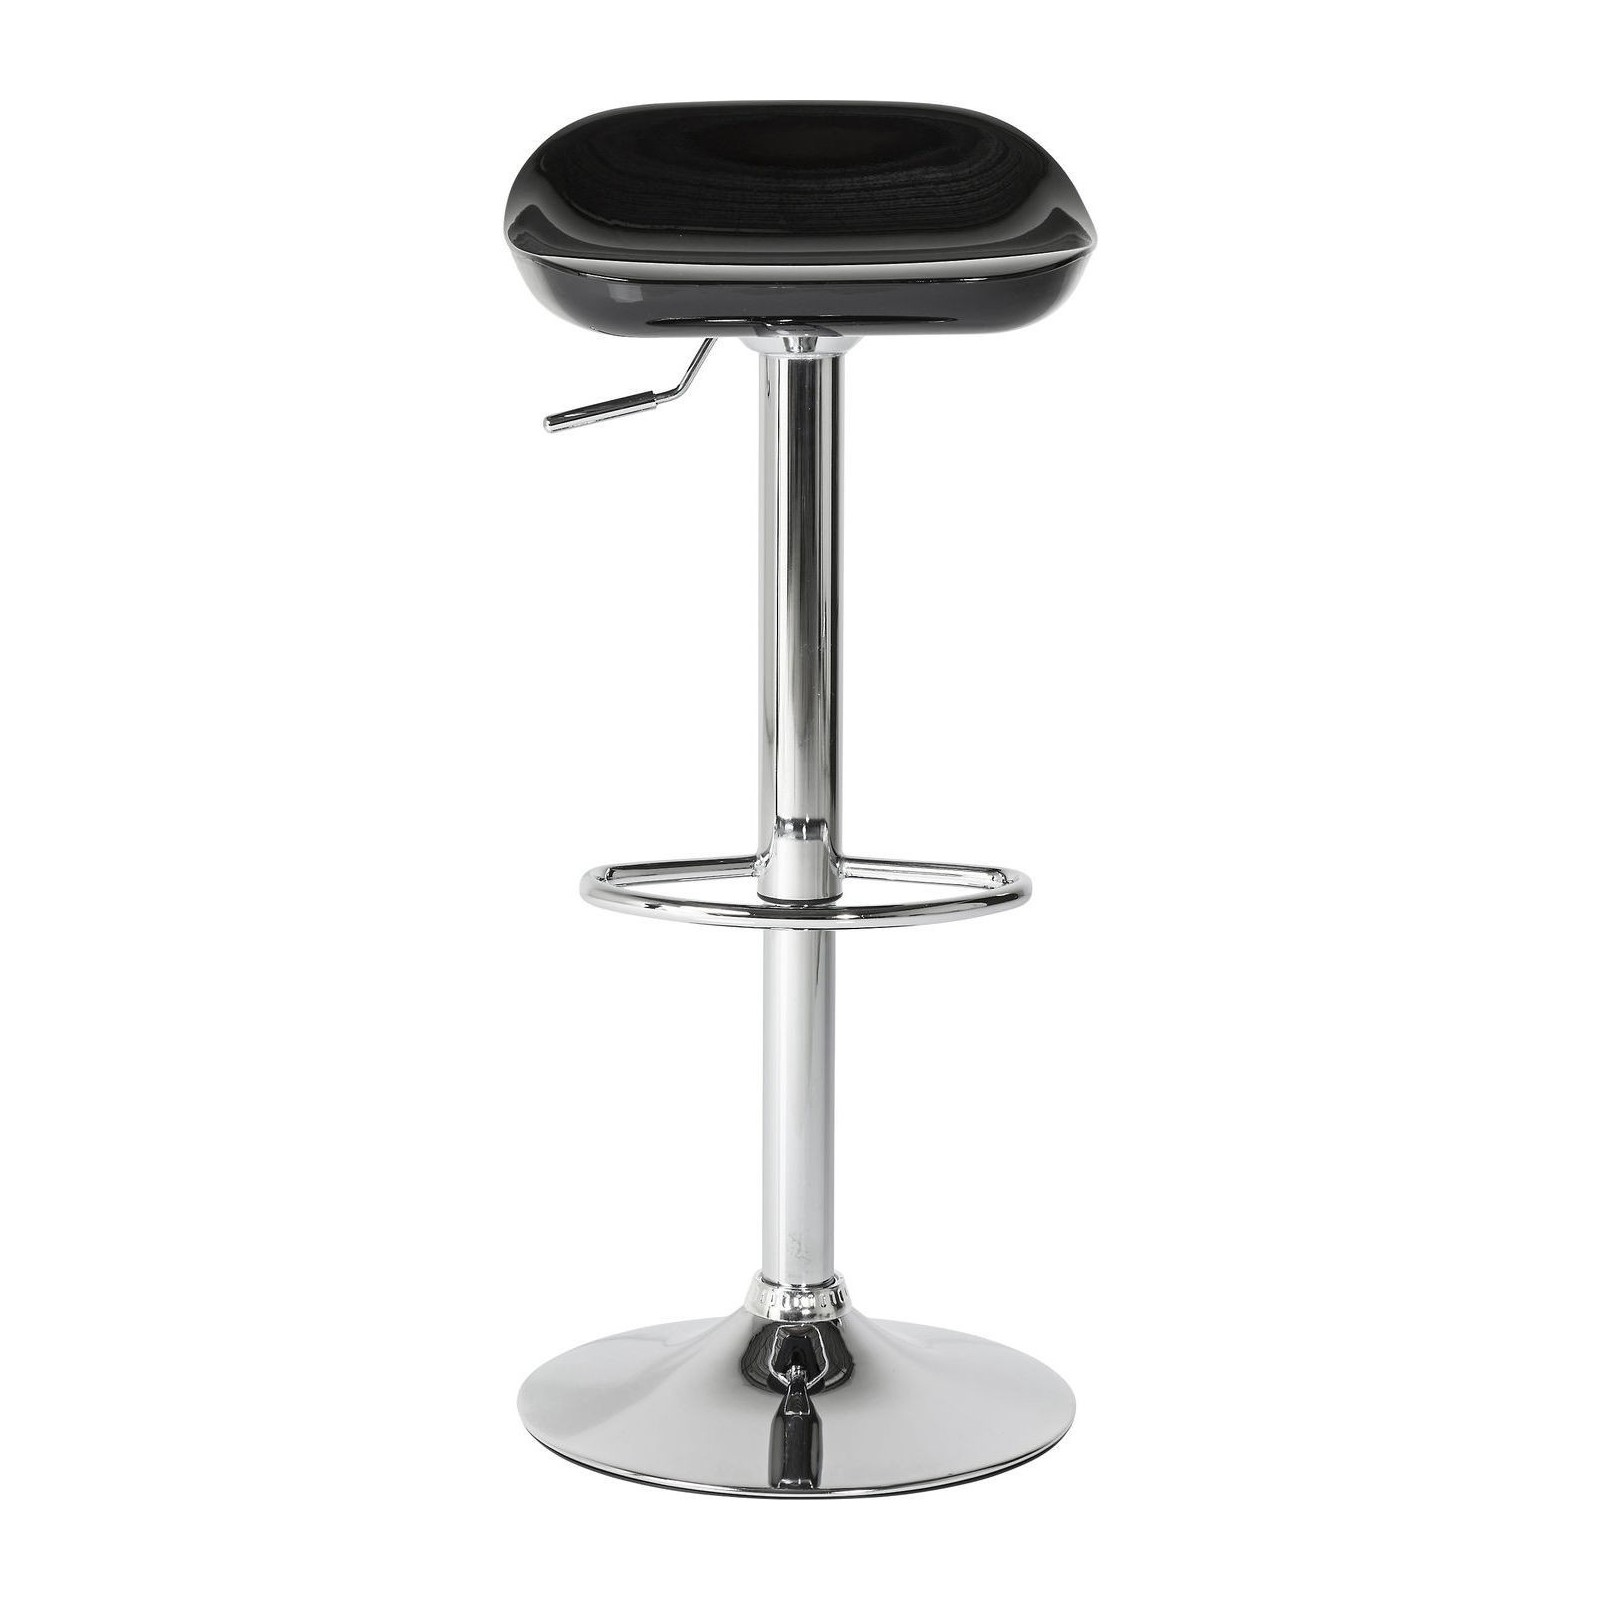 tabouret de bar design noir pivotant bucket meubles kare design. Black Bedroom Furniture Sets. Home Design Ideas